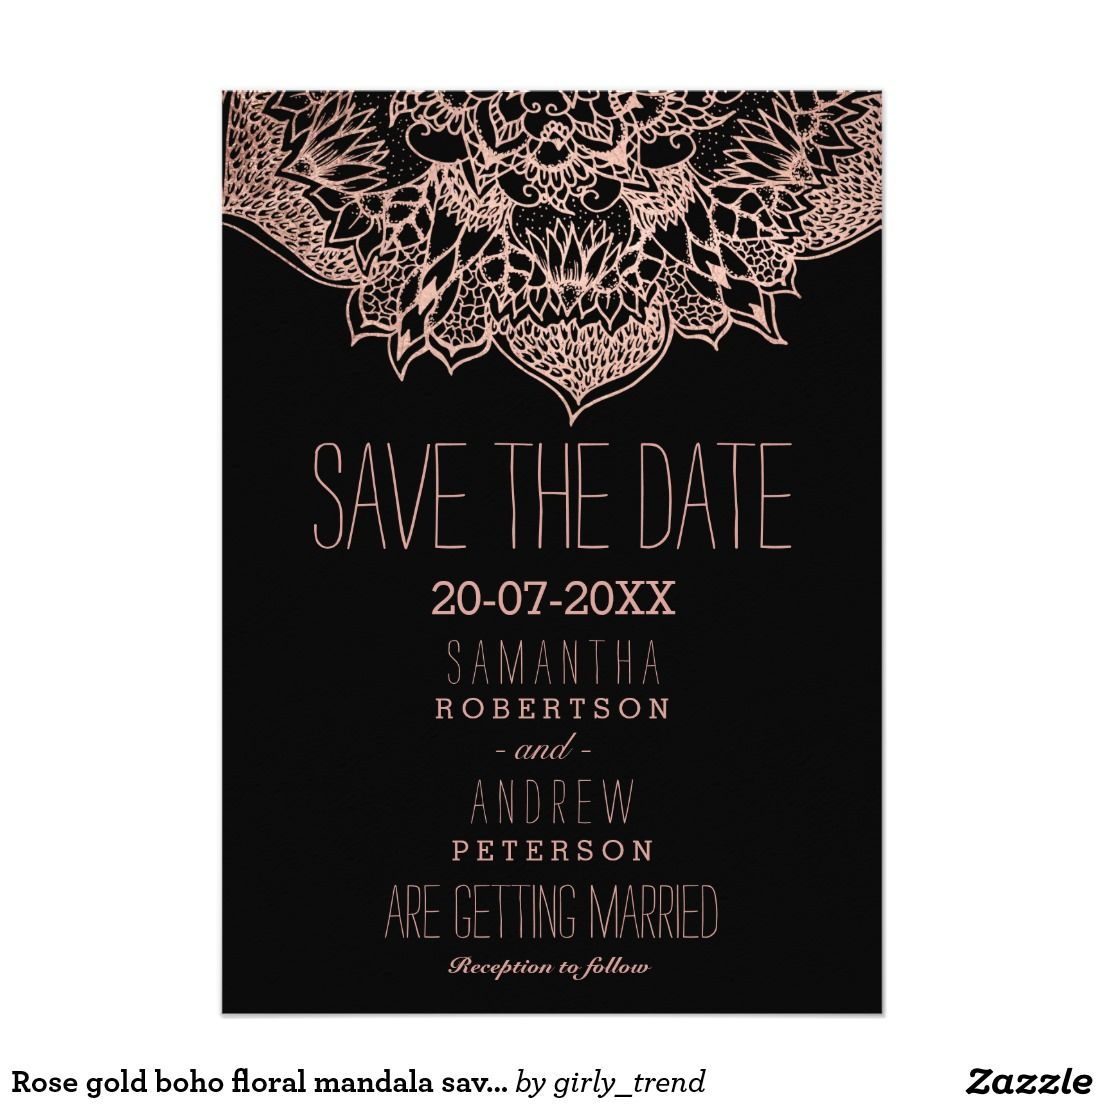 Gold color cardstock paper 5x7 - Rose Gold Boho Floral Mandala Save The Date 5x7 Paper Invitation Card